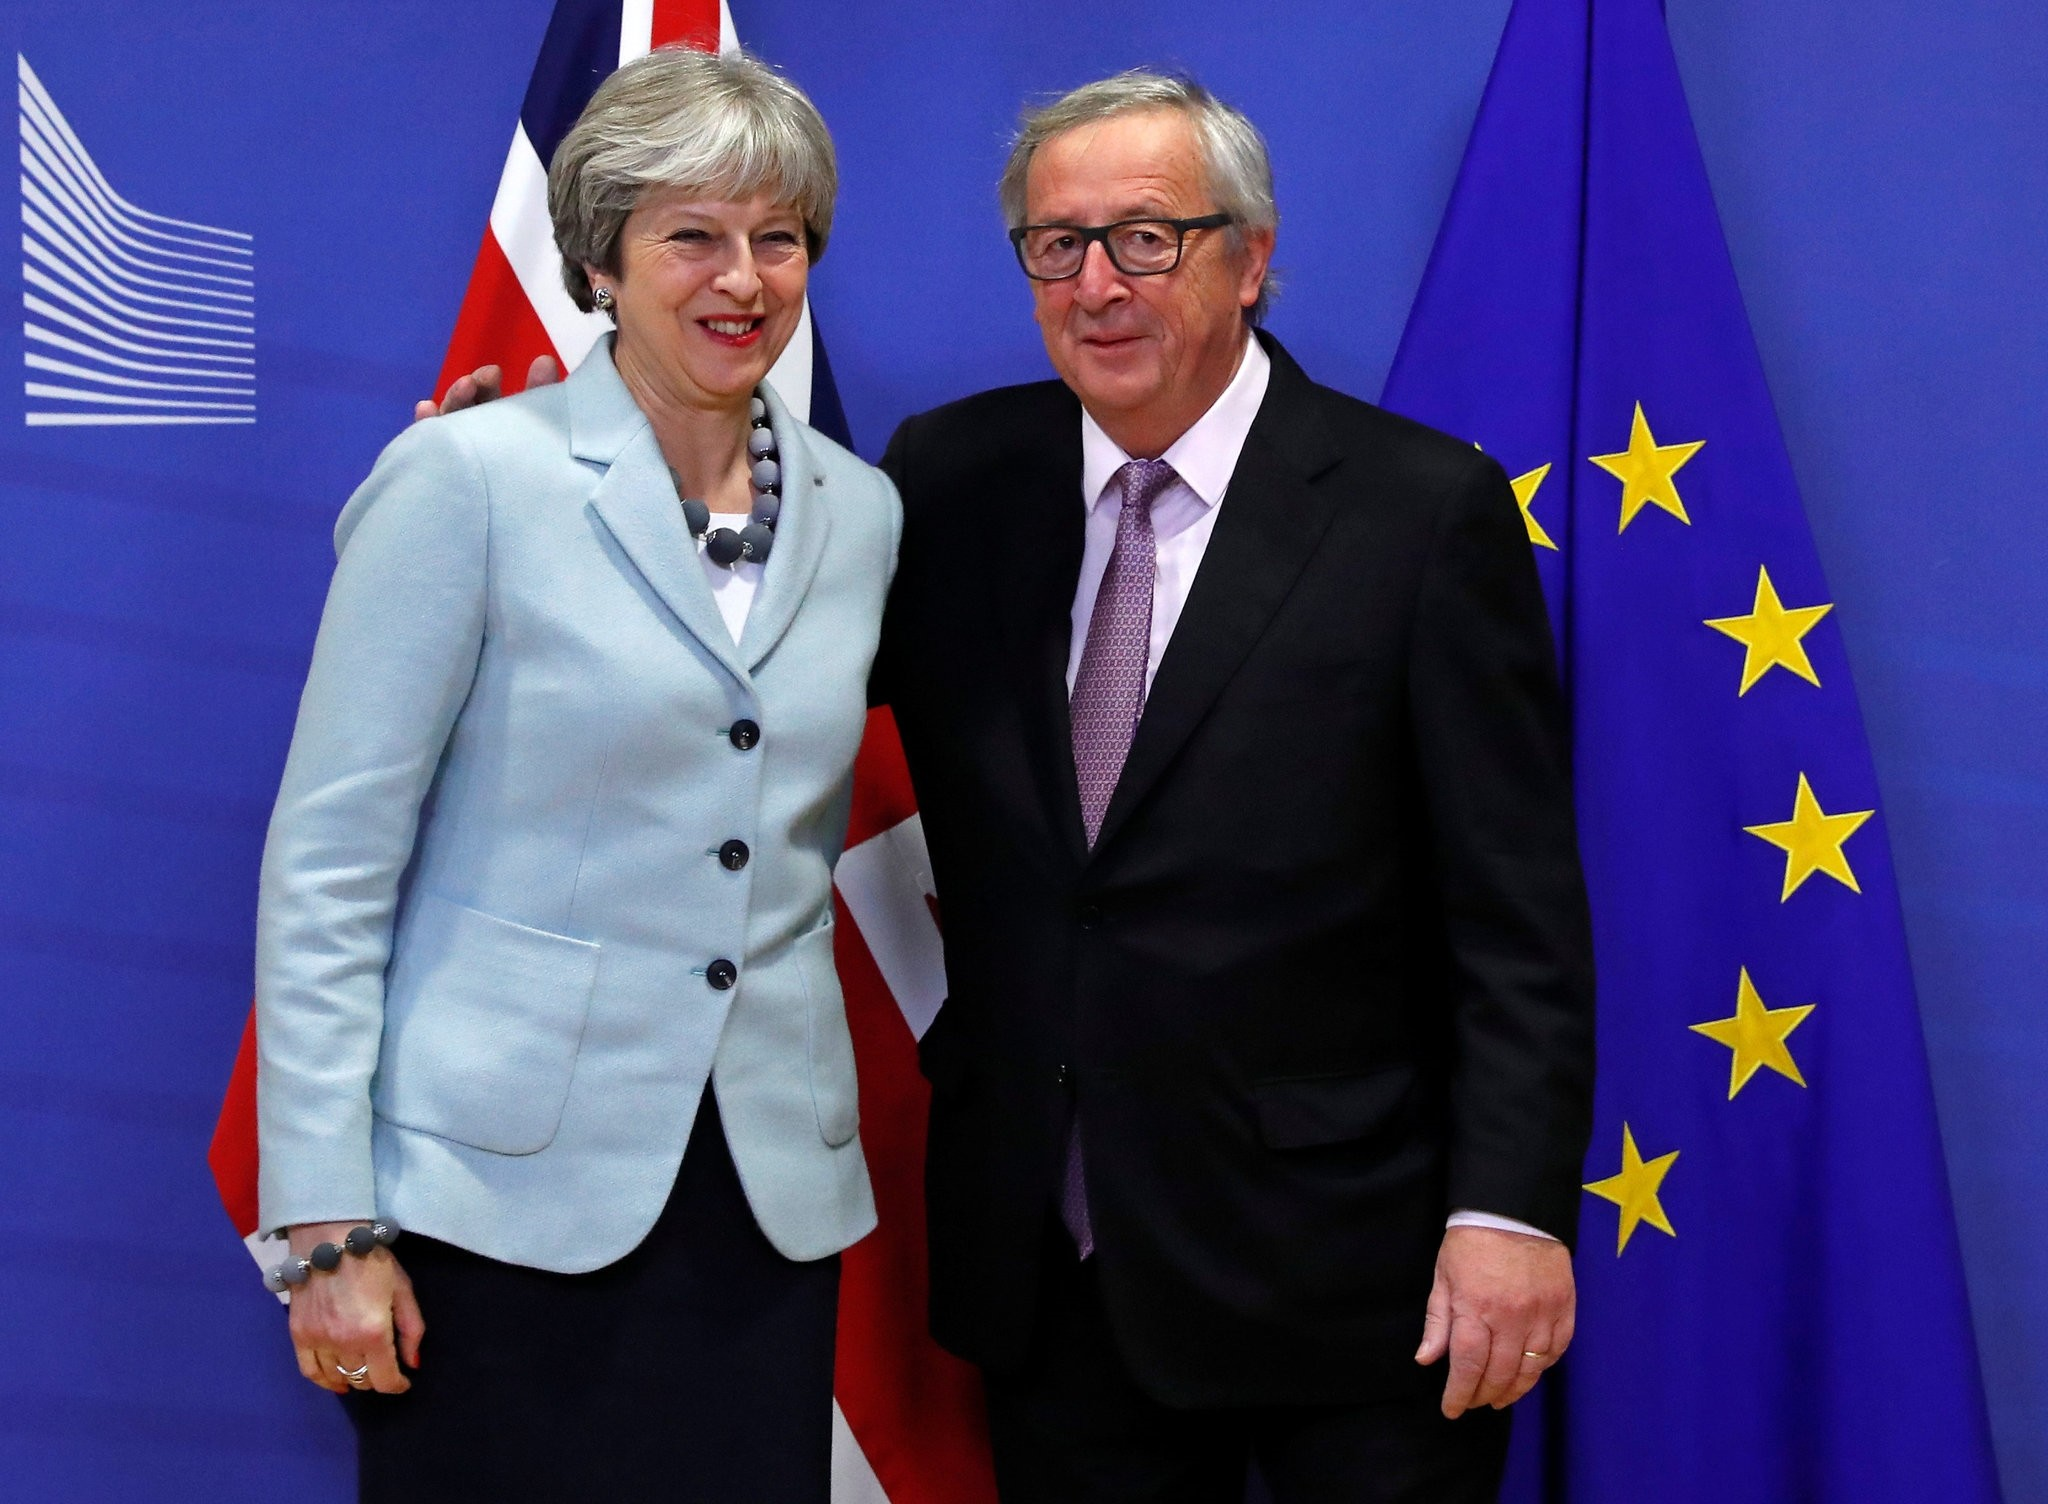 Britain's Prime Minister Theresa May is welcomed by European Commission President Jean-Claude Juncker at the EC headquarters in Brussels, Belgium December 8, 2017.  (REUTERS Photo)